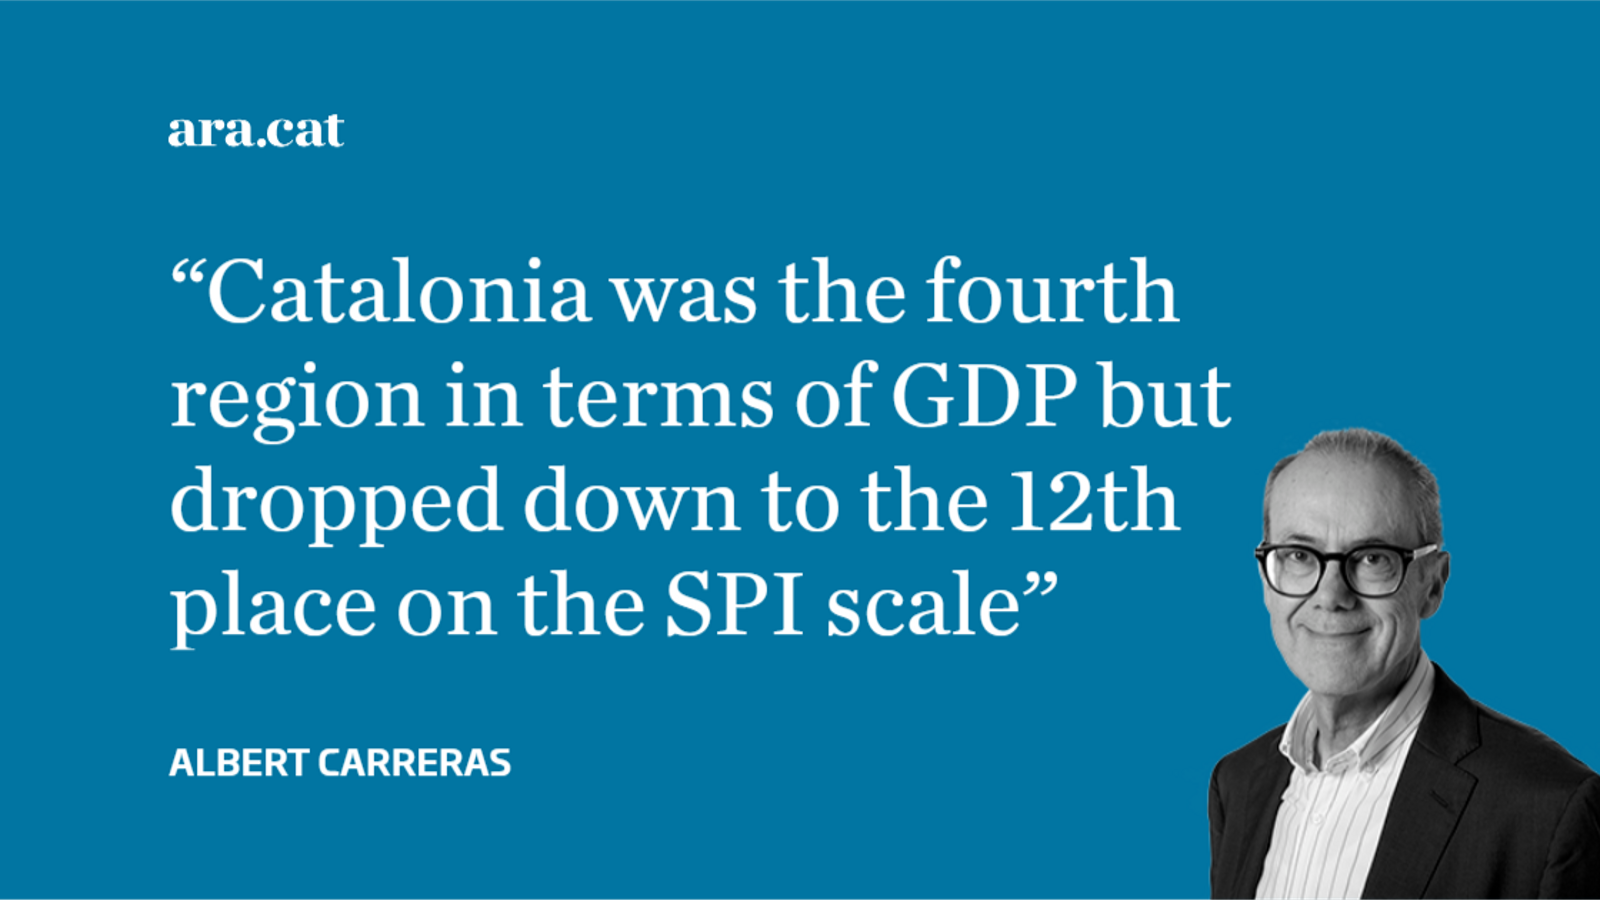 Does Catalonia get the lion's share in Spain?